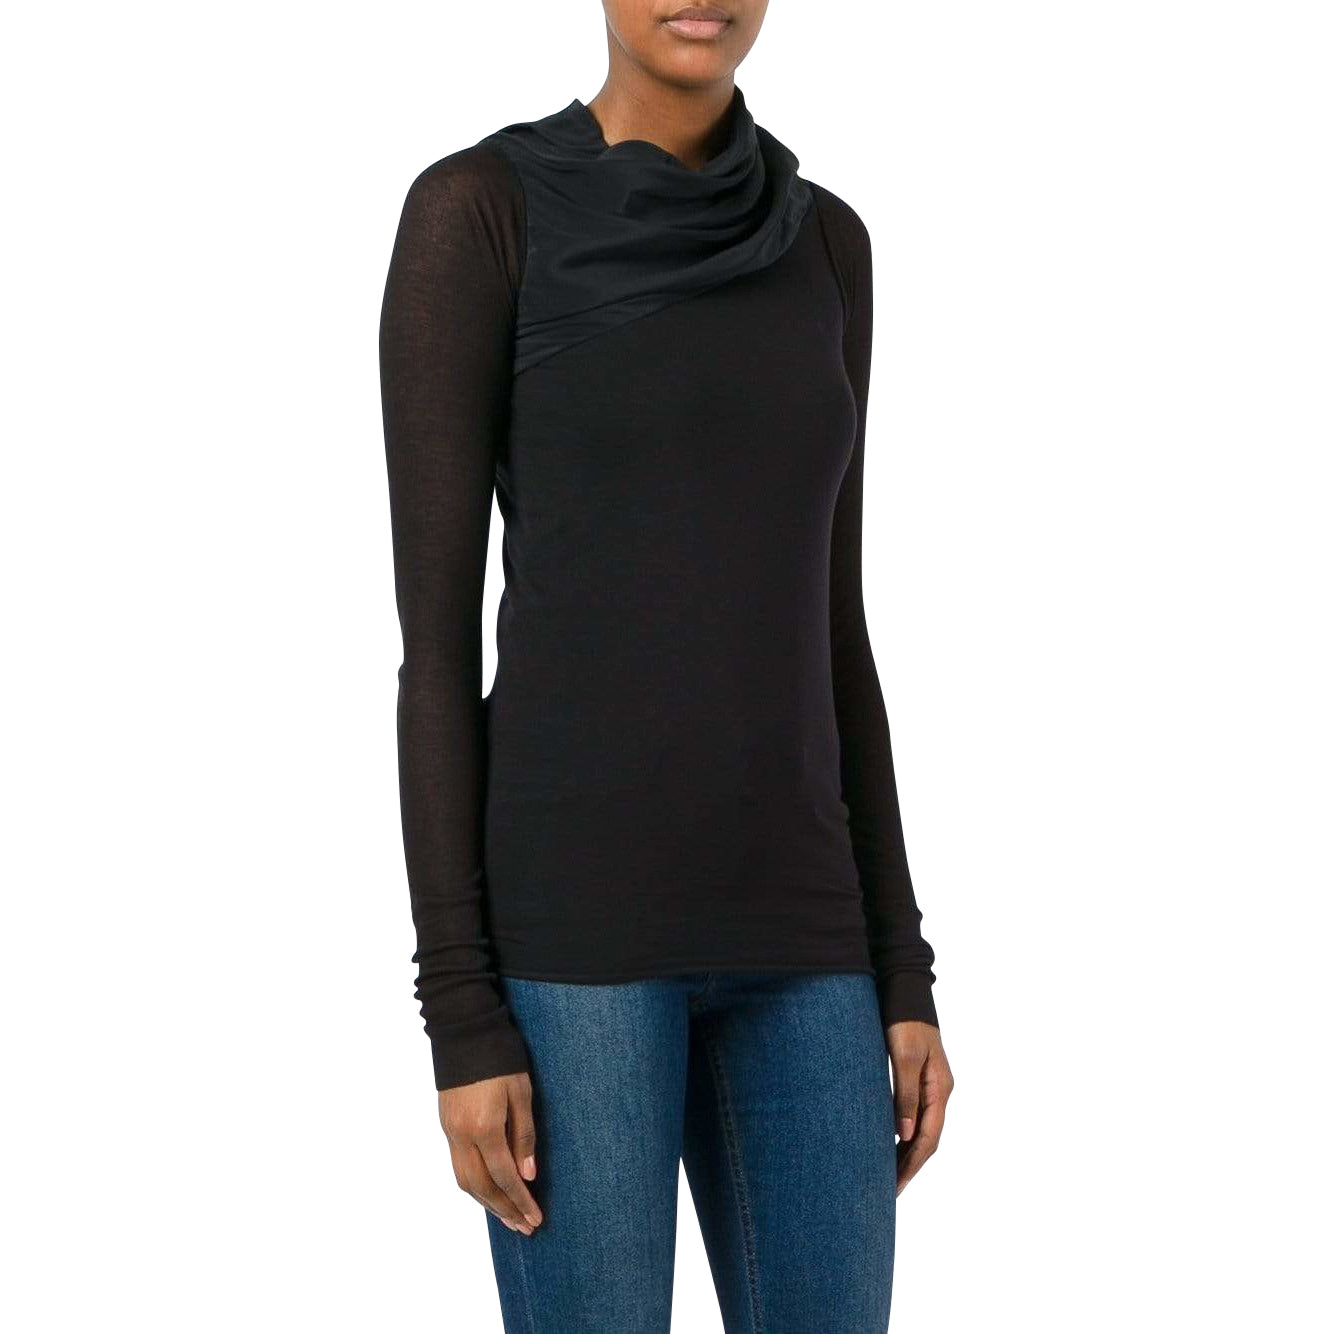 Rick Owens lilies Women's Tops 40 / Black Draped Top